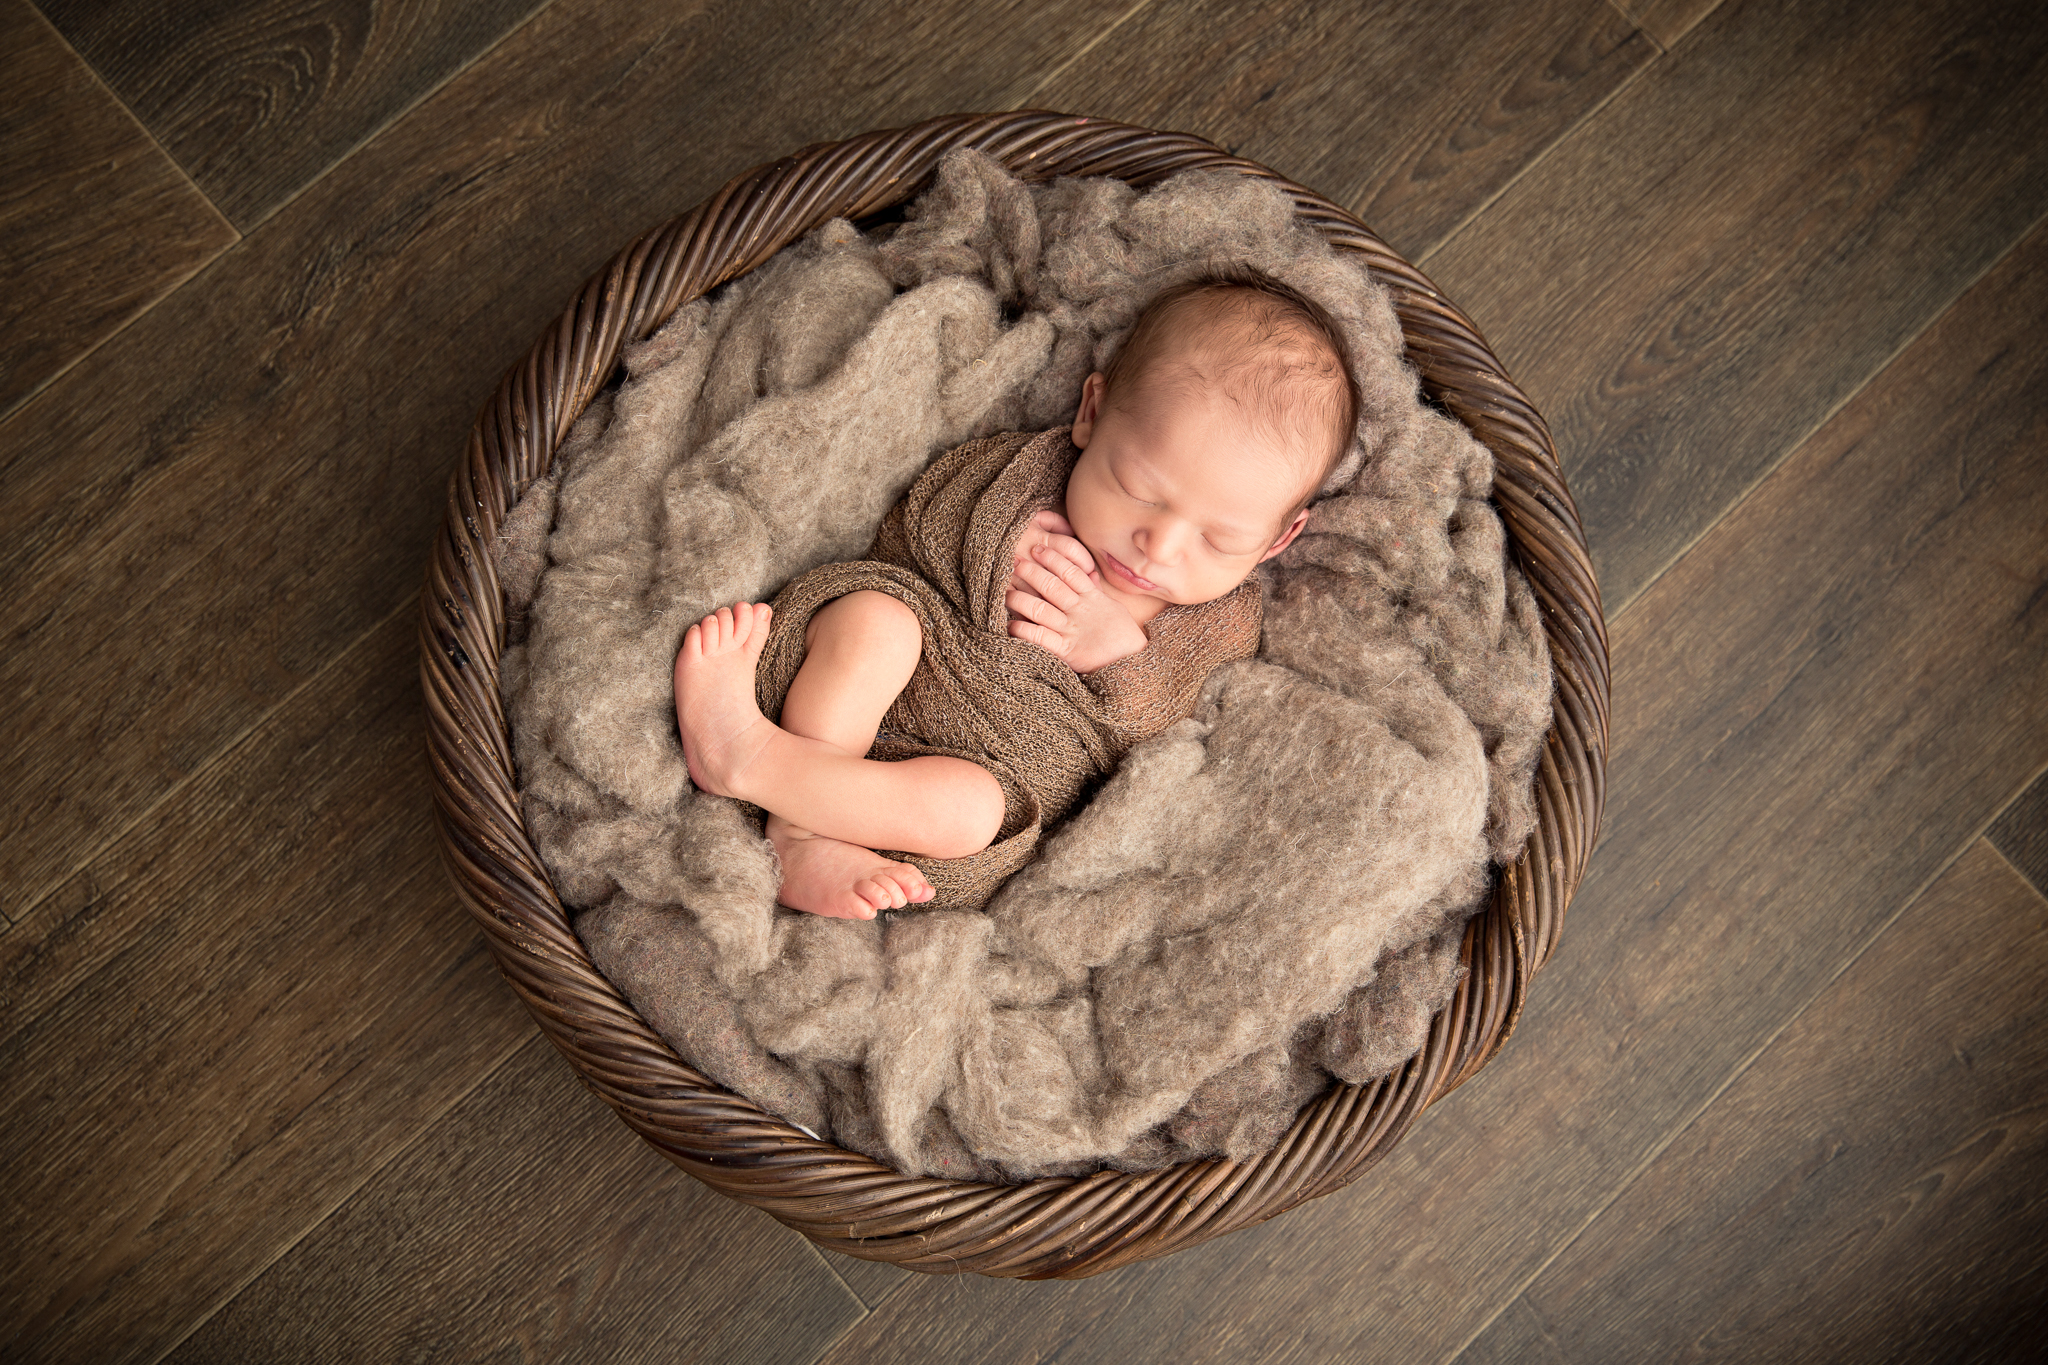 baby boy captured sleeping in a wooden basket during a newborn baby photography session in berkshire